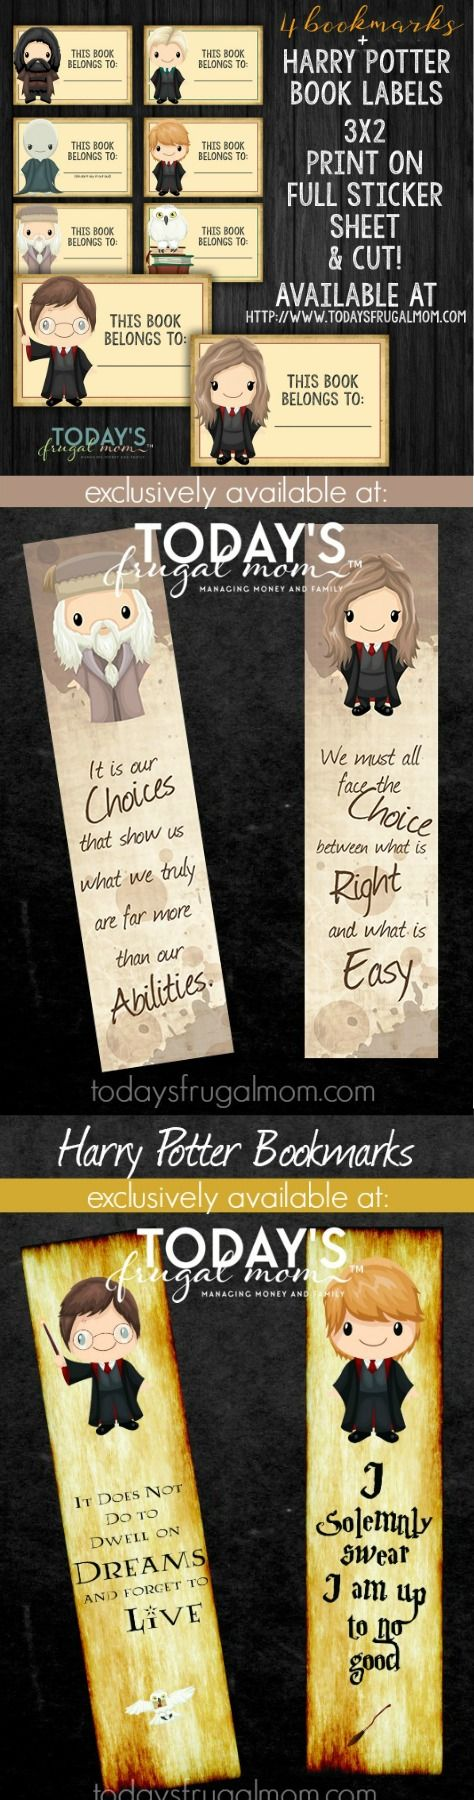 Come and grab these custom and exclusive printable Harry Potter bookmarks + book labels for the Harry Potter fans in your house! :: todaysfrugalmom.com